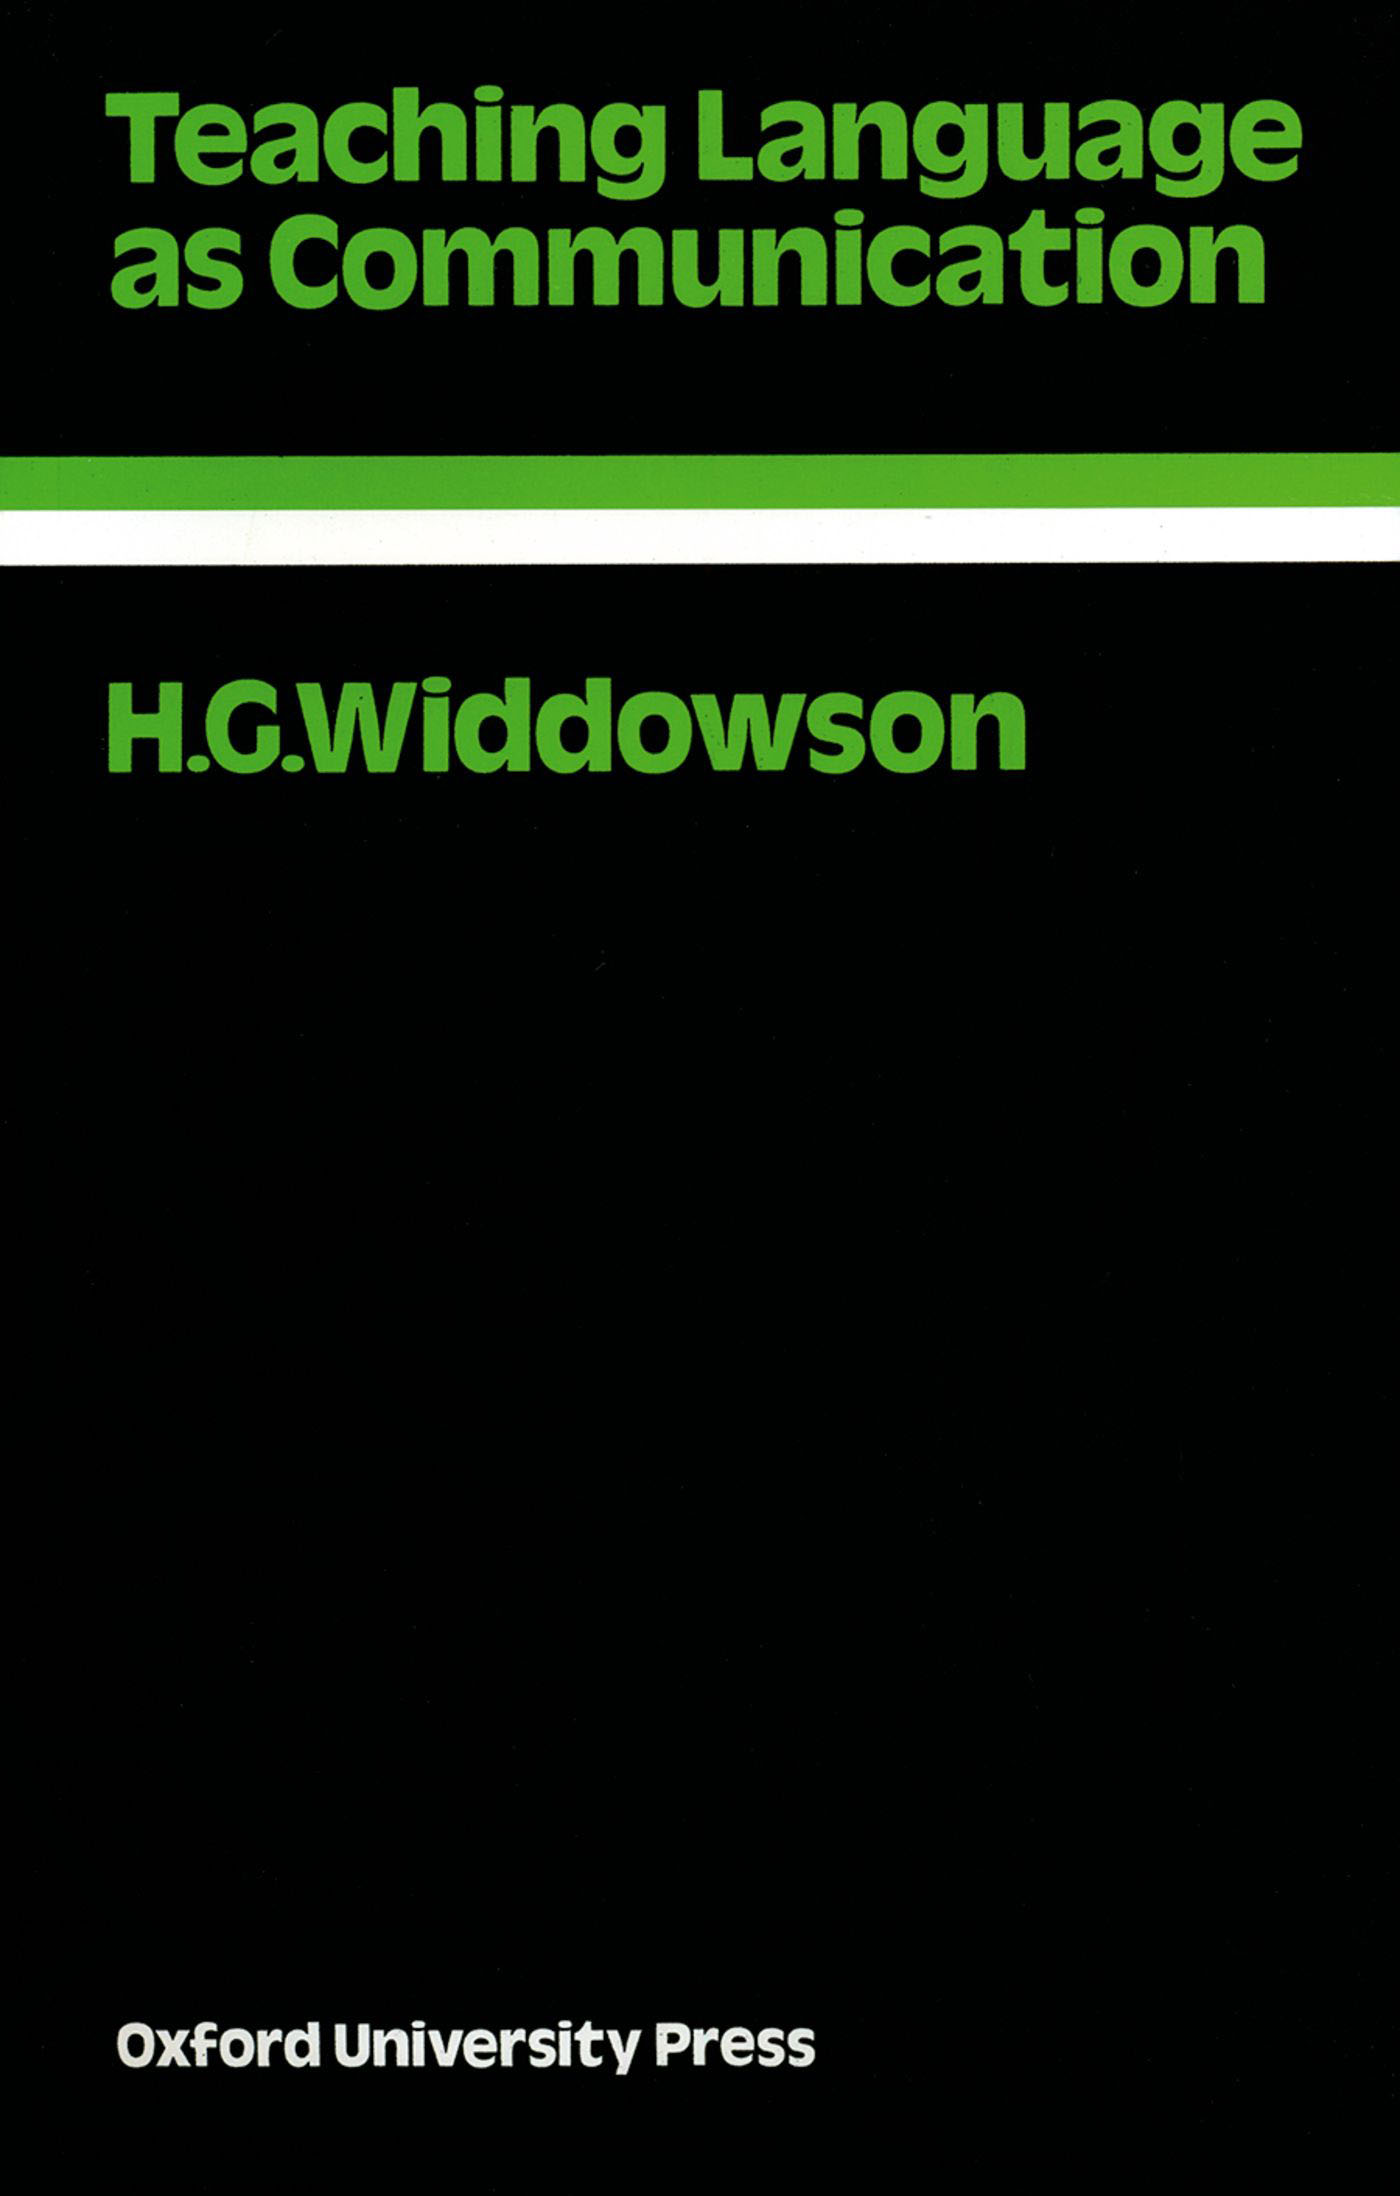 H. G. Widdowson Teaching Language as Communication